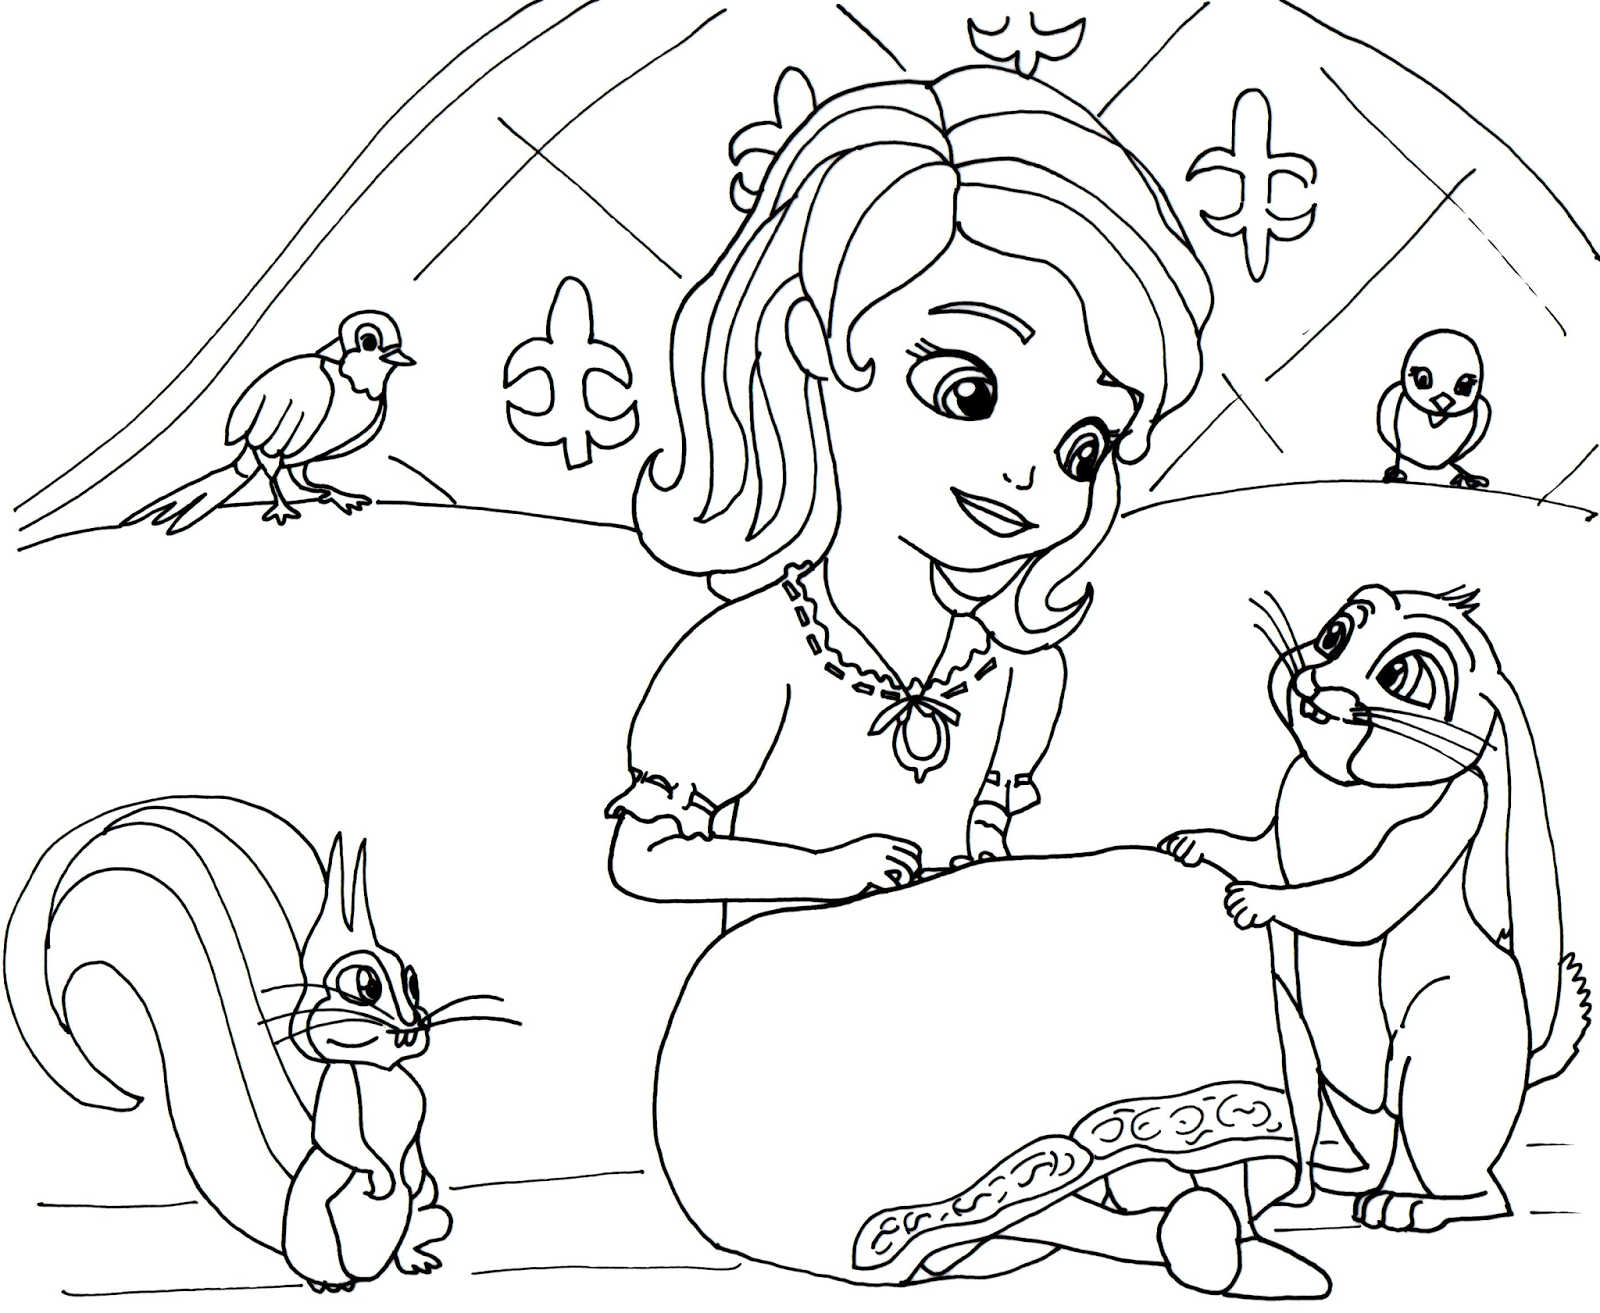 sofia the first coloring page 1 Coloring Kids